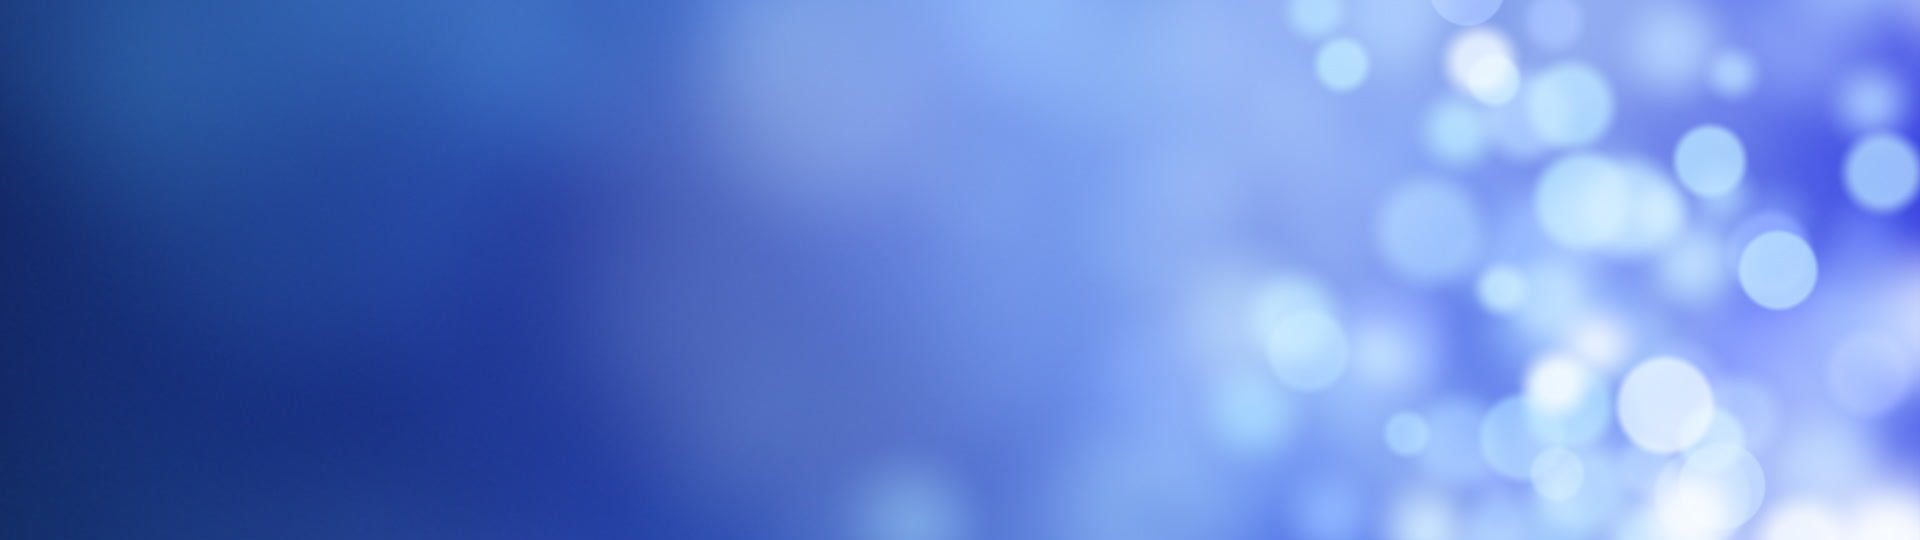 Loopable abstract background blue bokeh circles | computer generated loopable abstract motion background - ID:12059